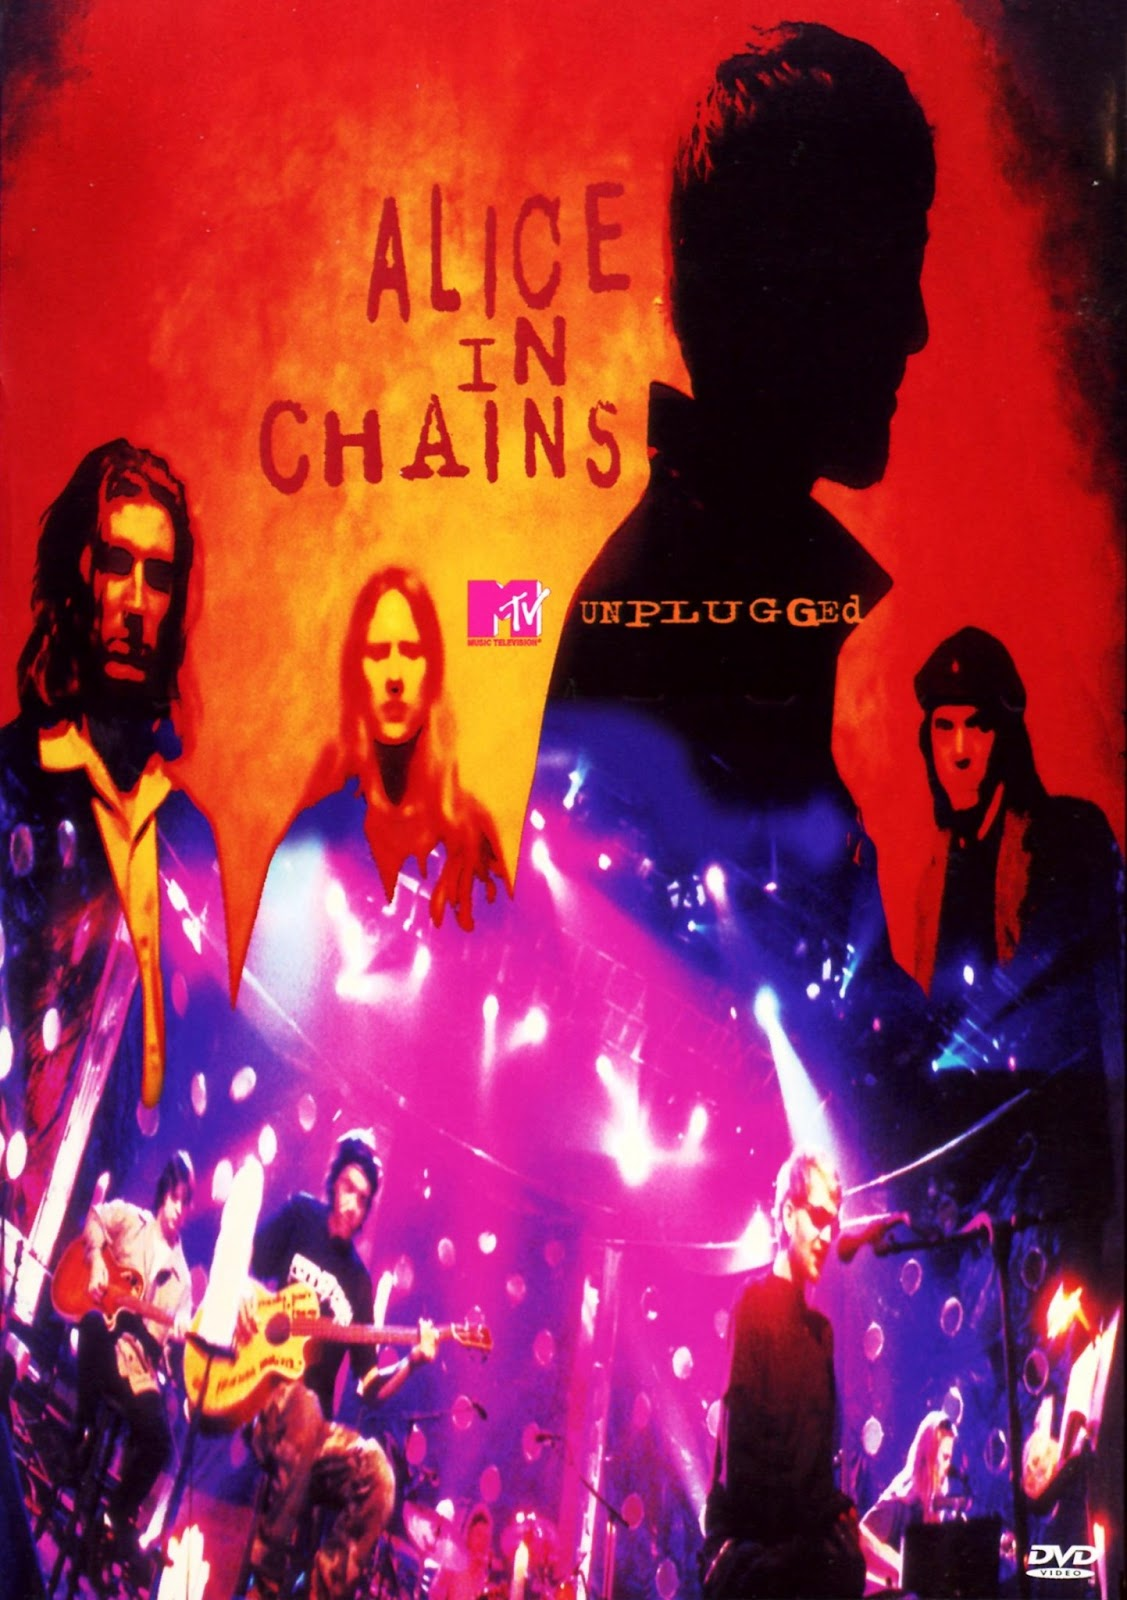 All you need is love...: [DVD] Alice in Chains - MTV Unplugged